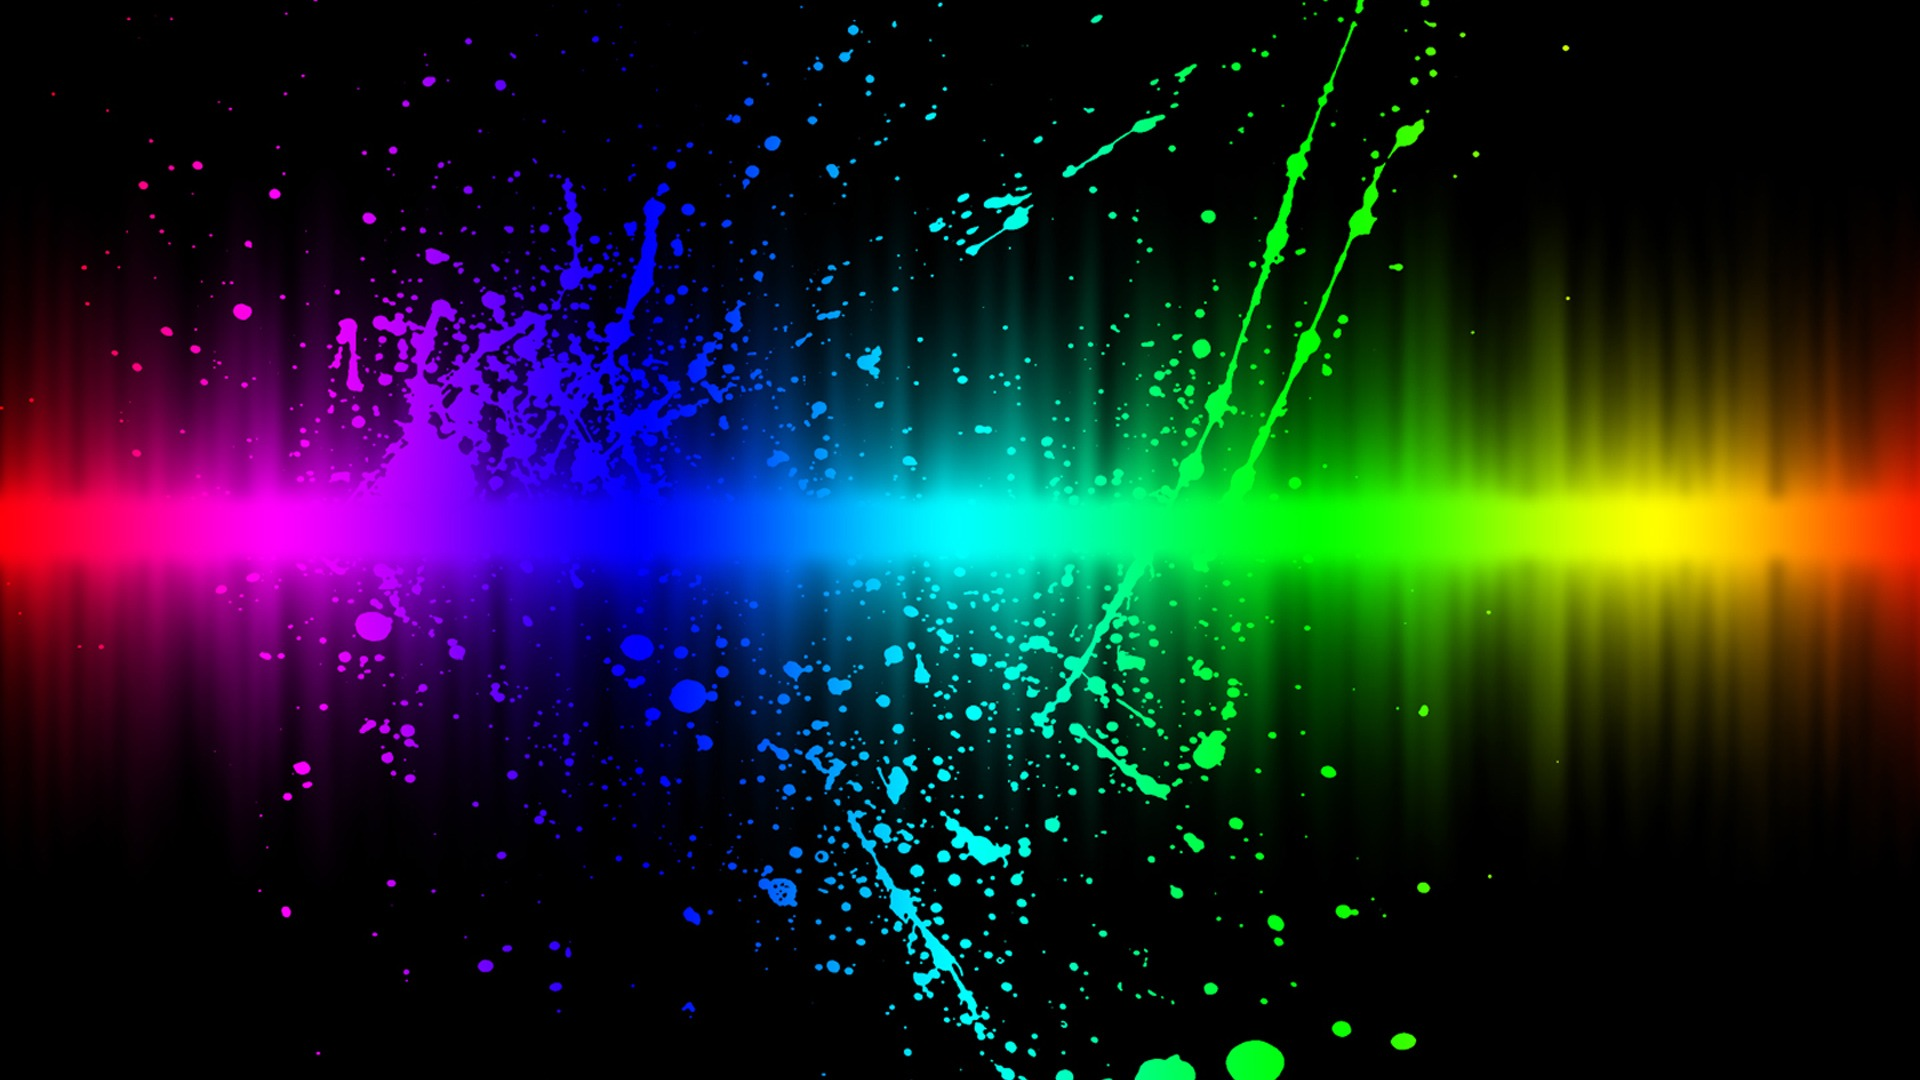 Full Color Music Background: Colors Explosion HD Wallpaper